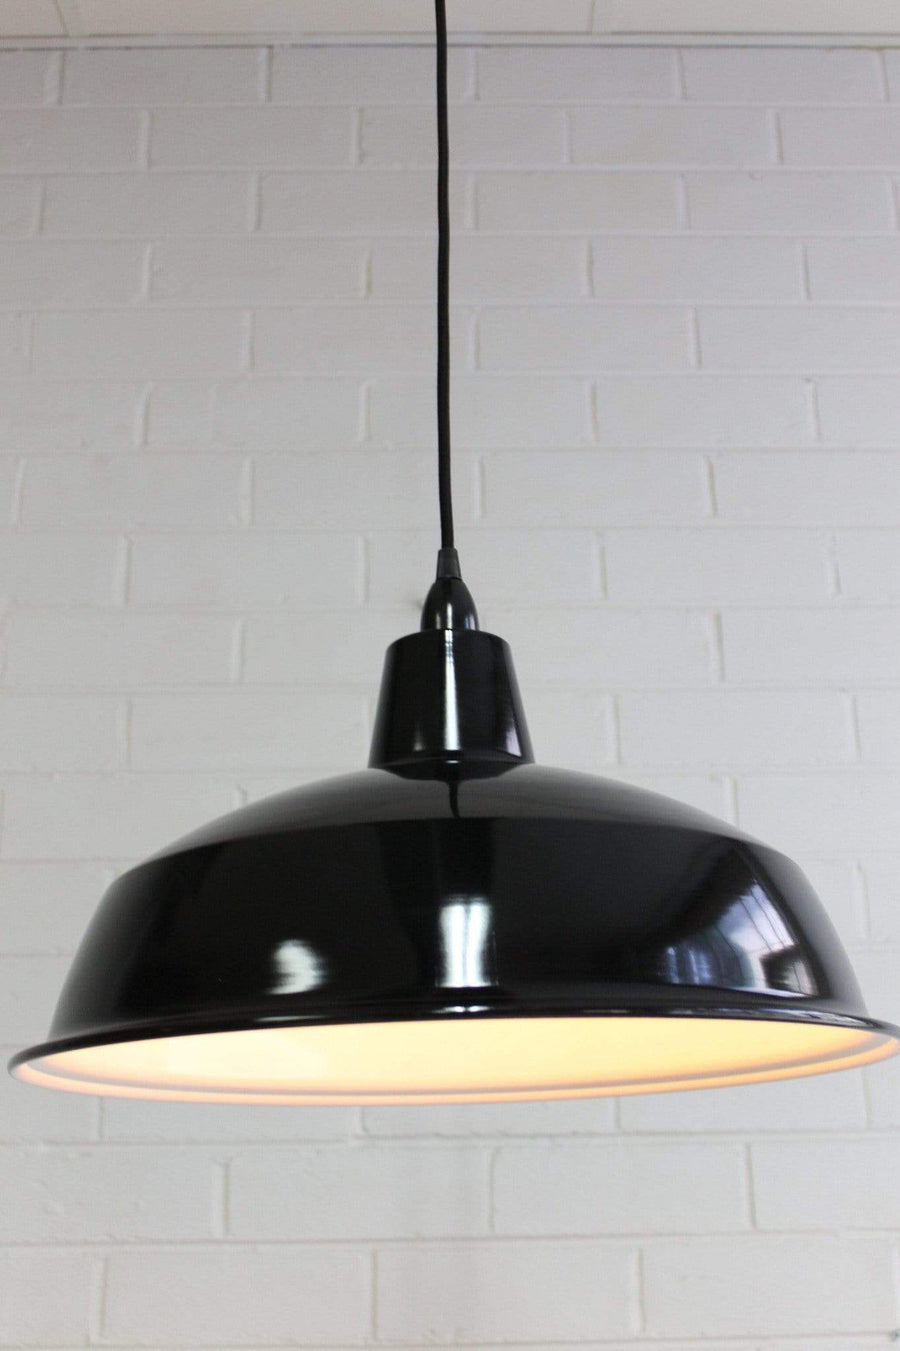 Enamel ceiling pendant light in black